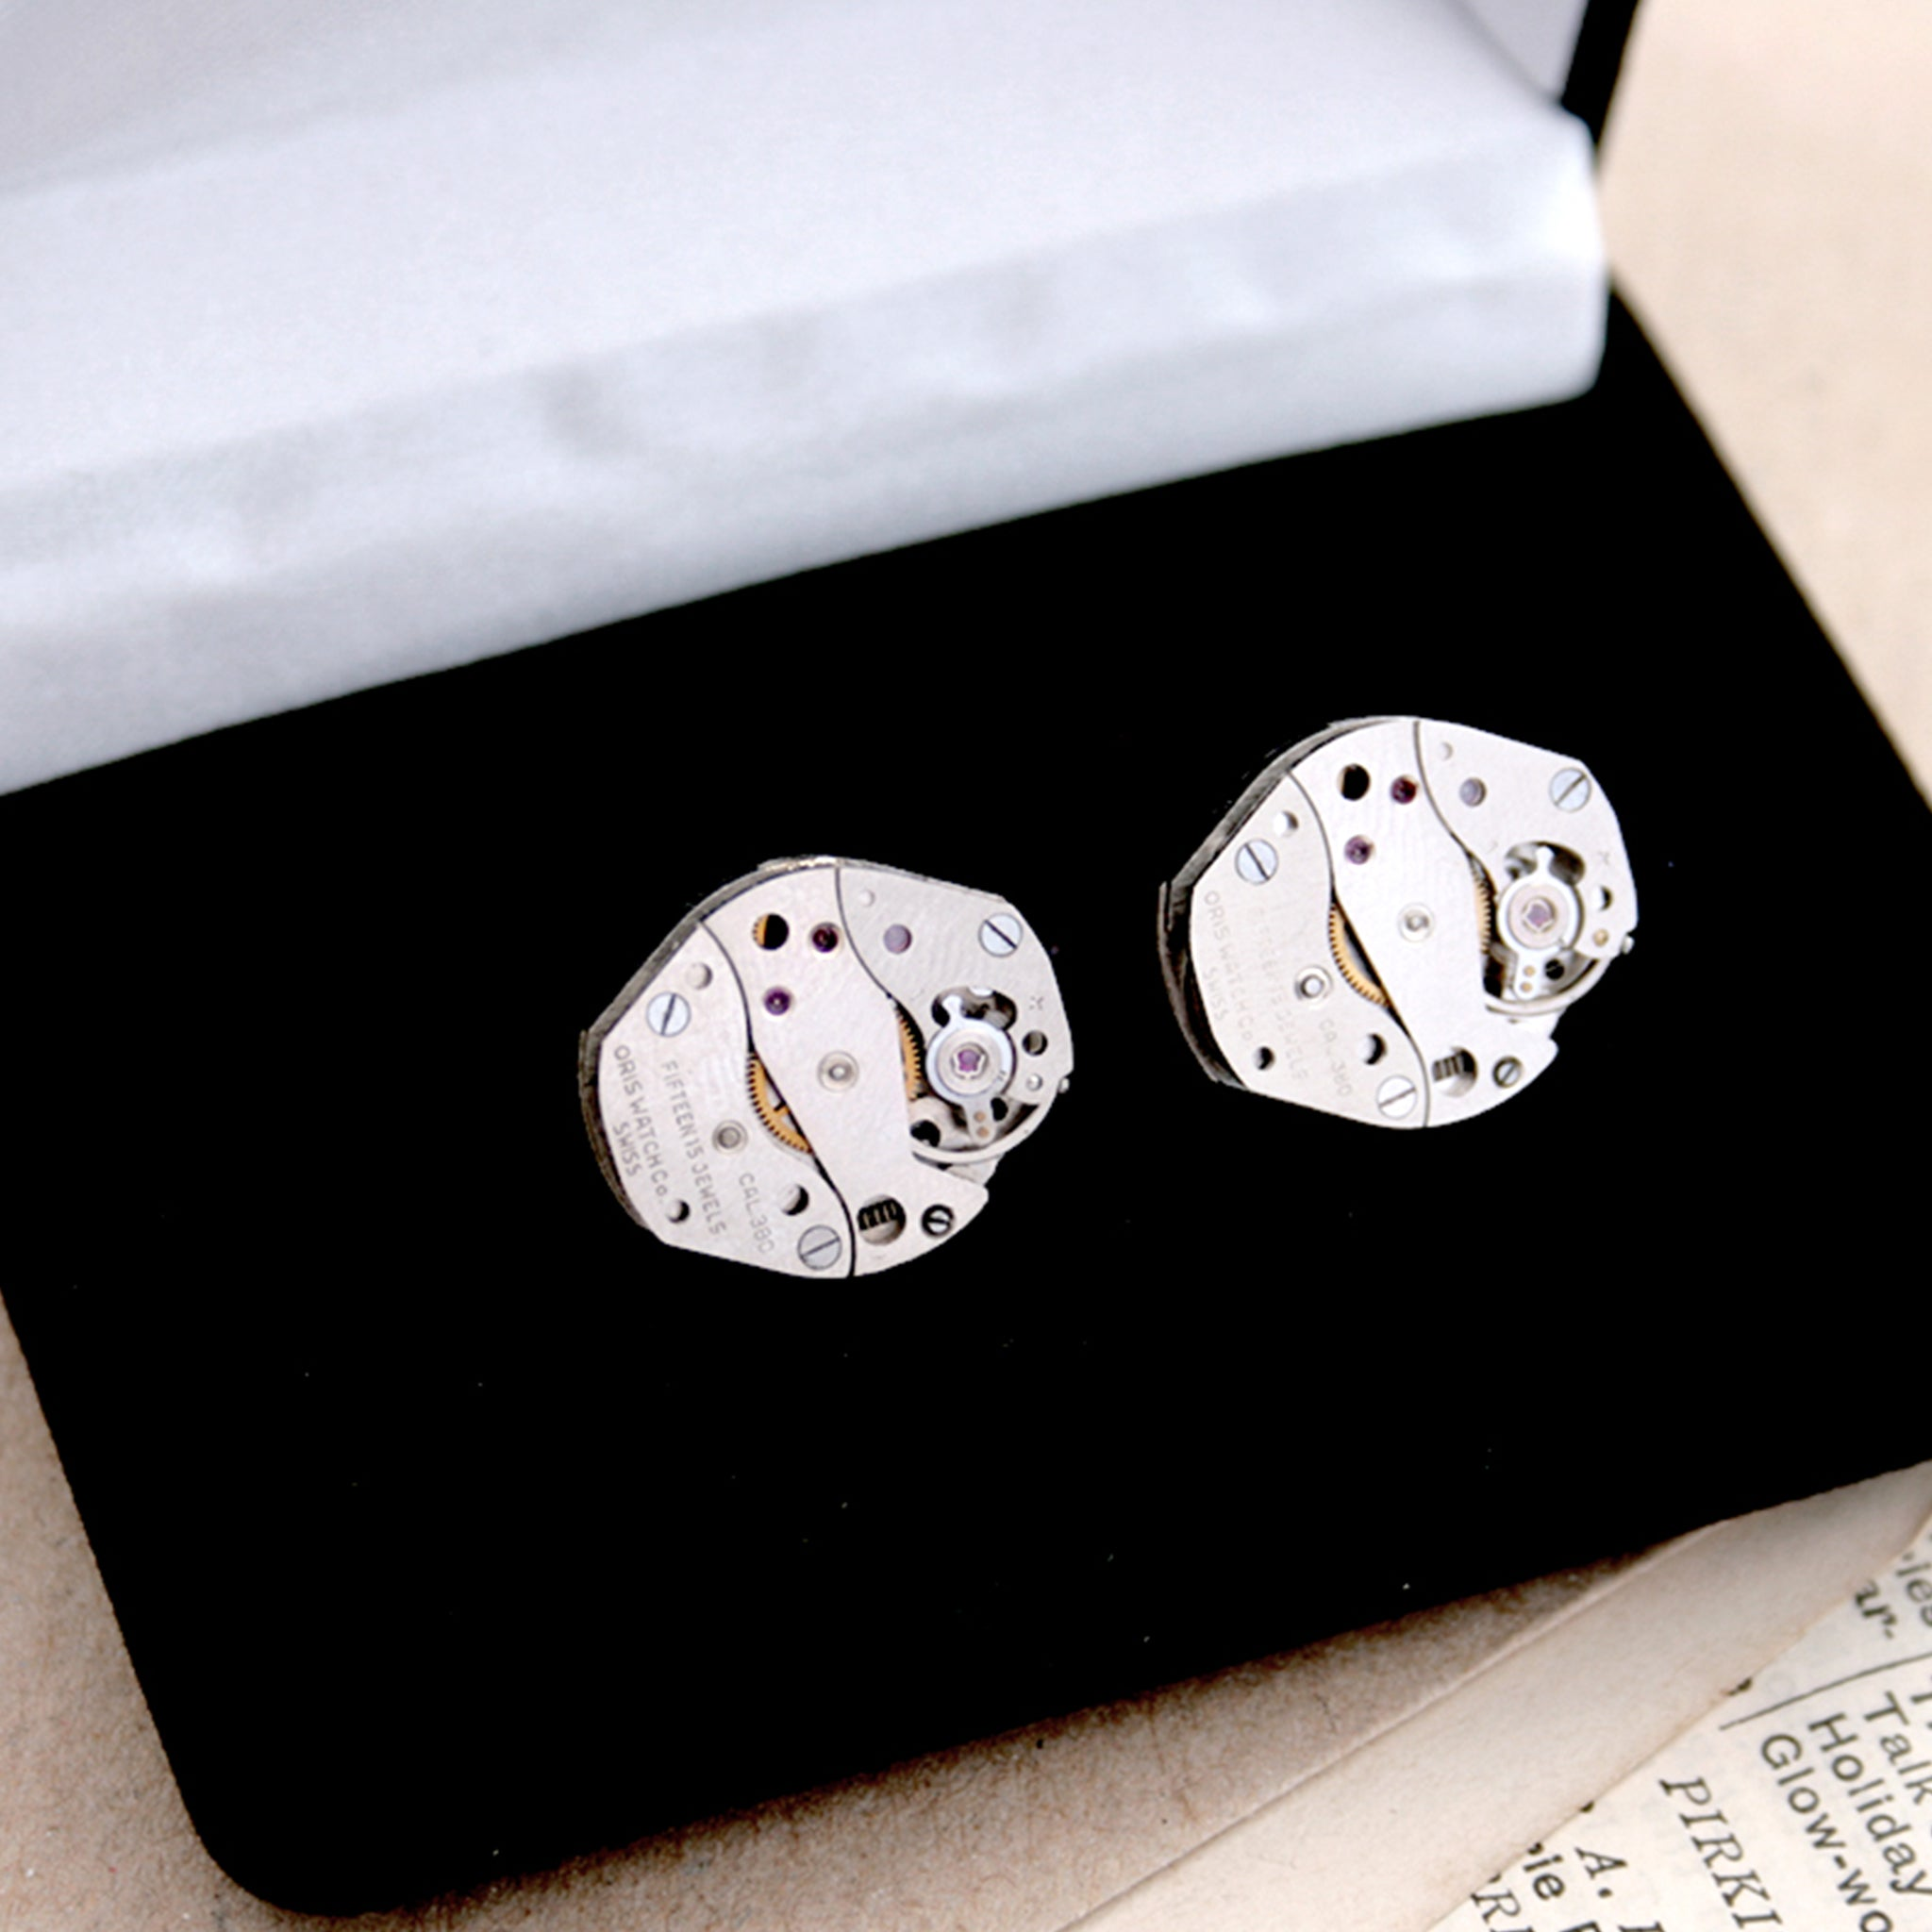 cool watch cufflinks for men featuring antique movements in black velour box